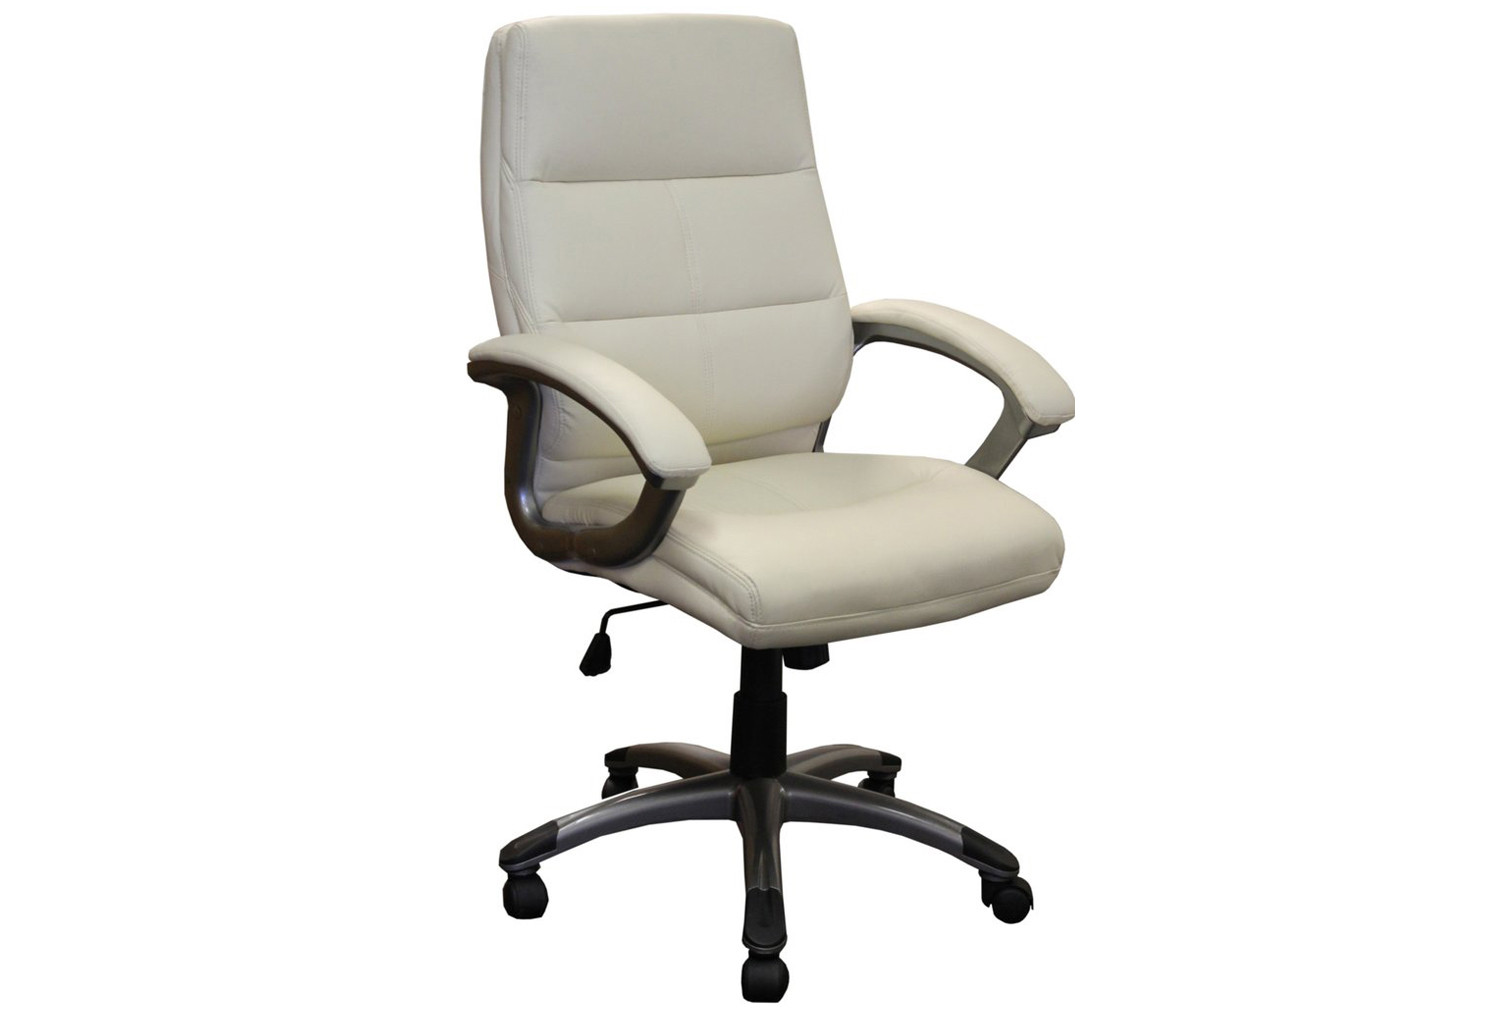 cream padded folding chairs chair cover hire blacktown telford executive furniture at work